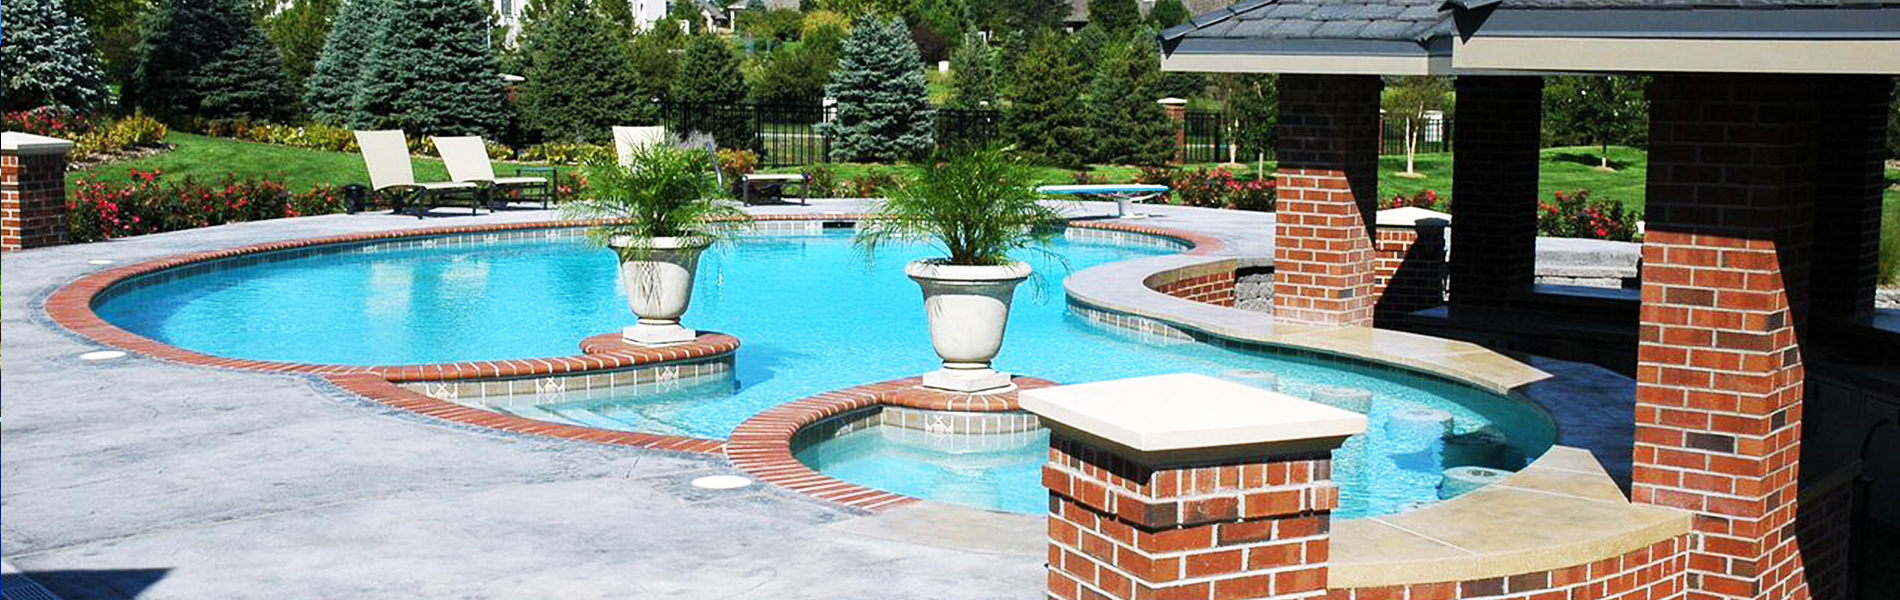 Pool Contractors in Omaha, NE | Swimming Pool Contractor